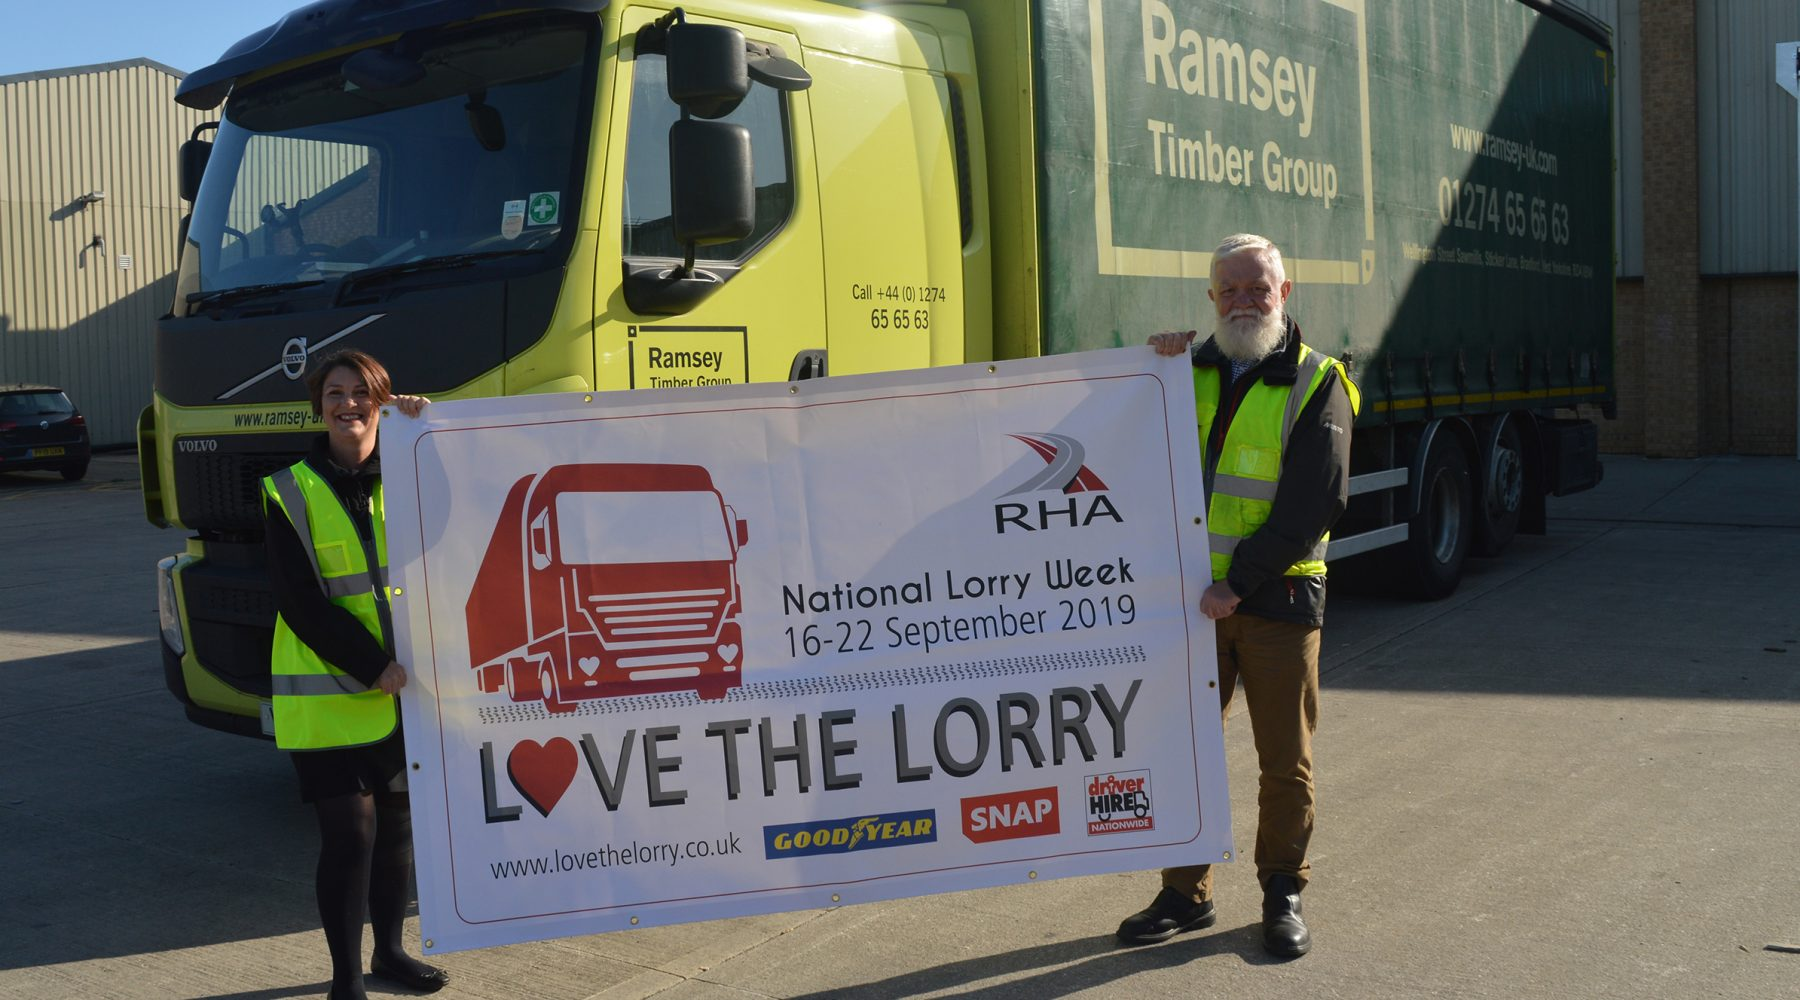 BRADFORD BASED RECRUITER SUPPORTS NATIONAL LORRY WEEK